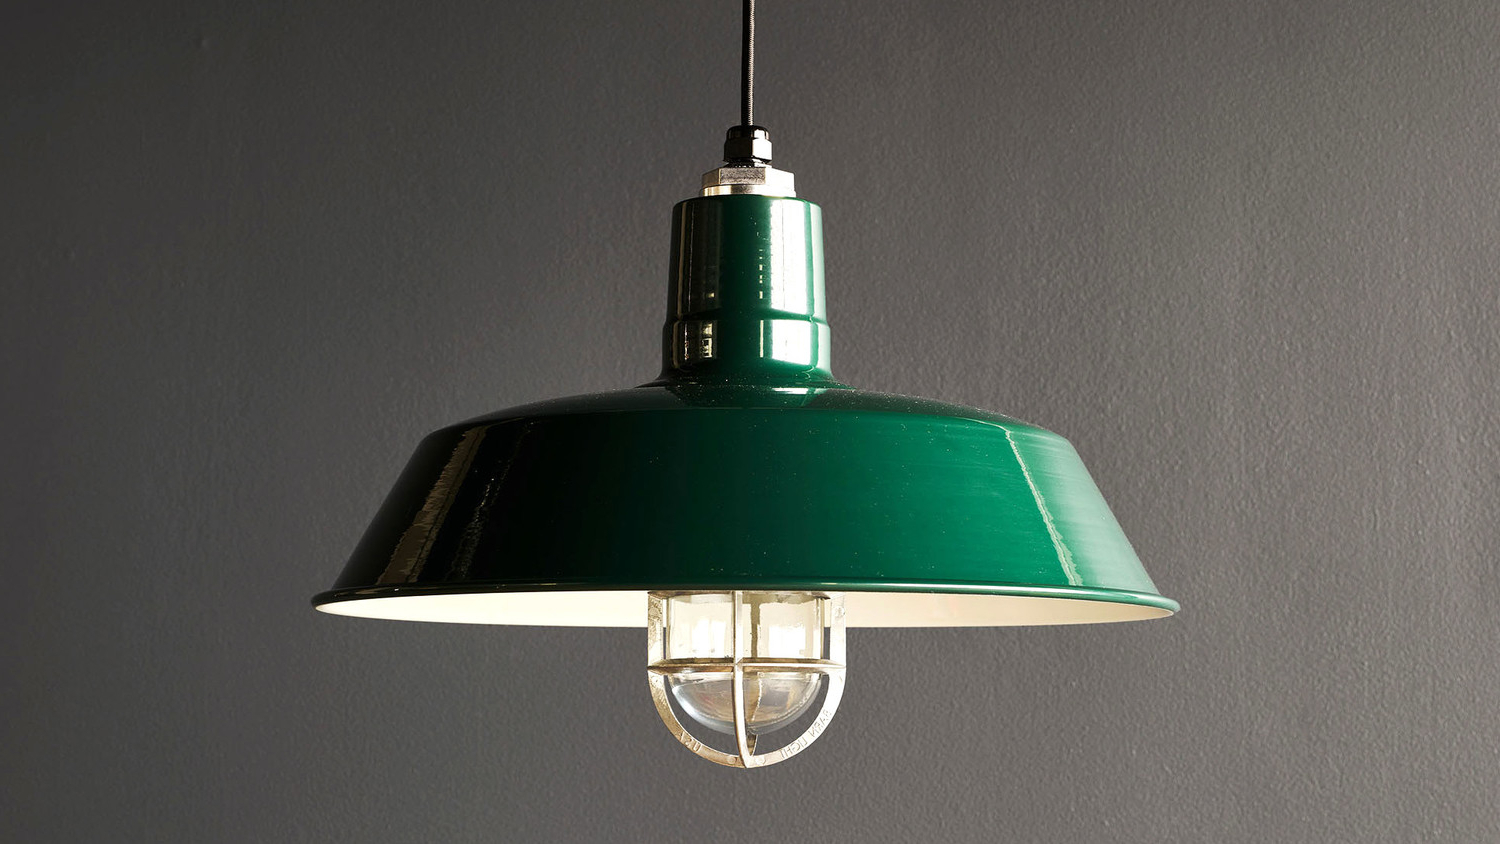 New Deals On Rossi 1 Light Pendant, Chrome In Most Popular Rossi Industrial Vintage 1 Light Geometric Pendants (View 12 of 20)